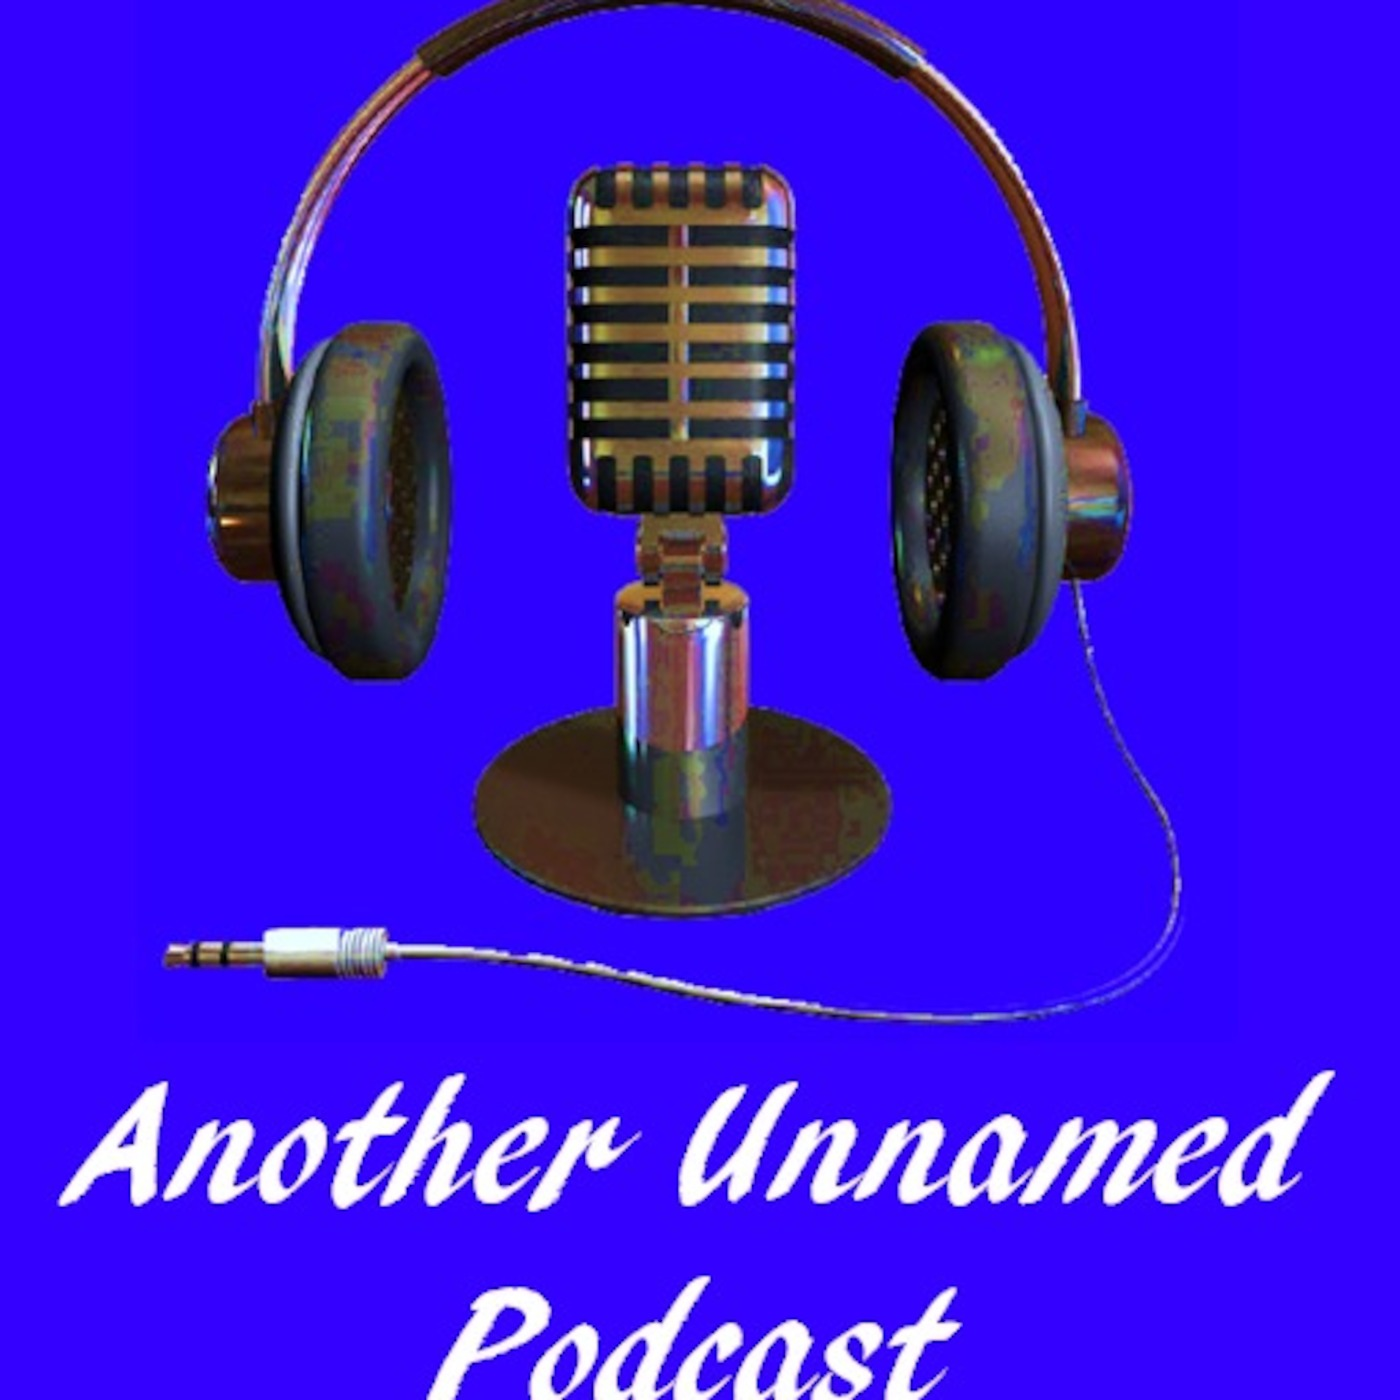 Another Unnamed Podcast